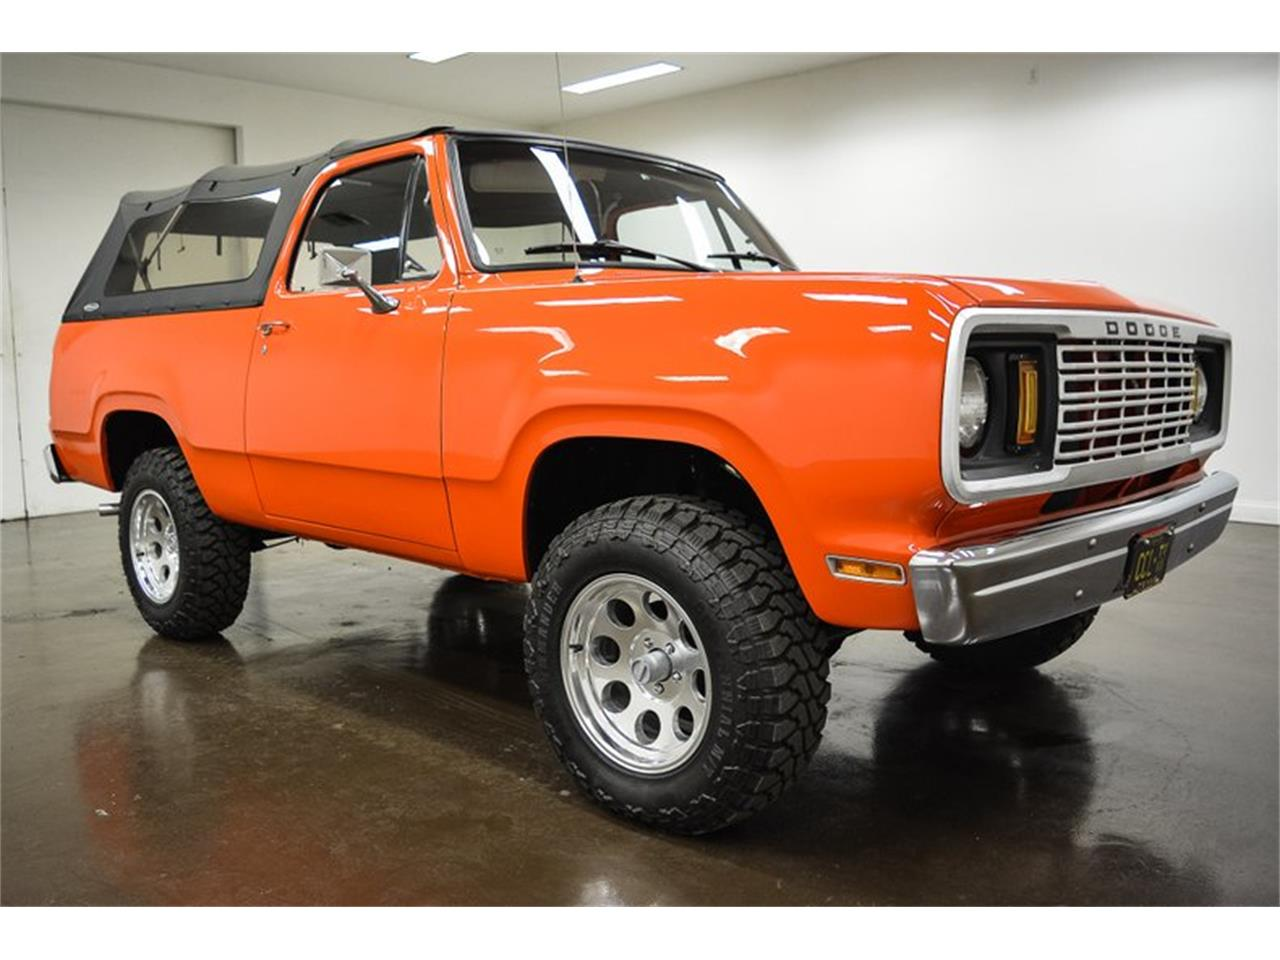 1978 Dodge Ramcharger For Sale In Sherman Tx Classiccarsbay Com